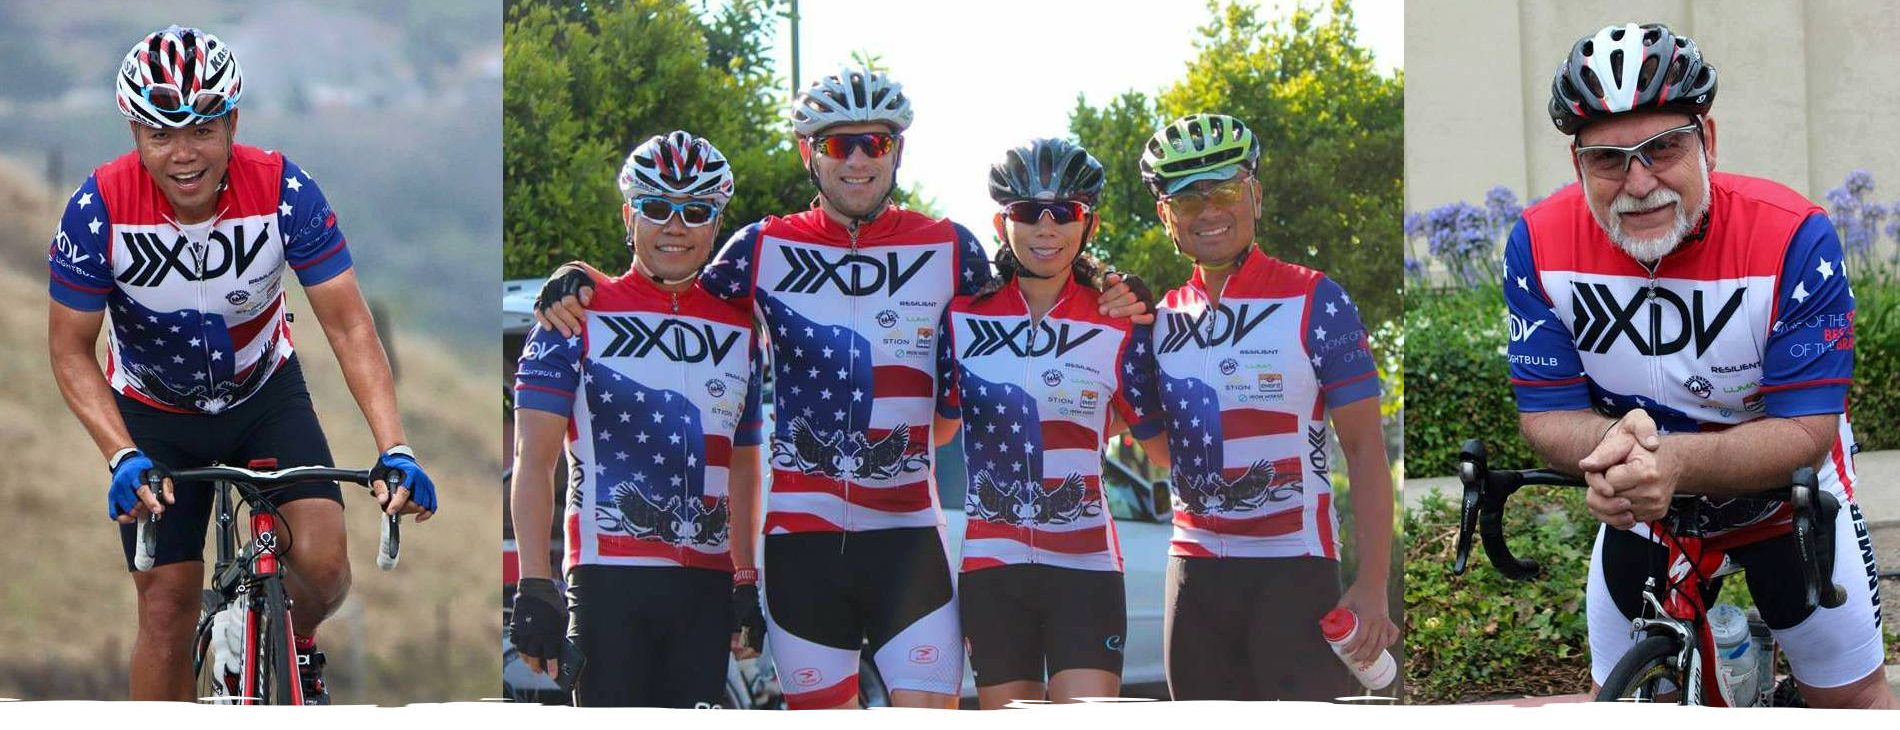 bicycling vets riding for a cause